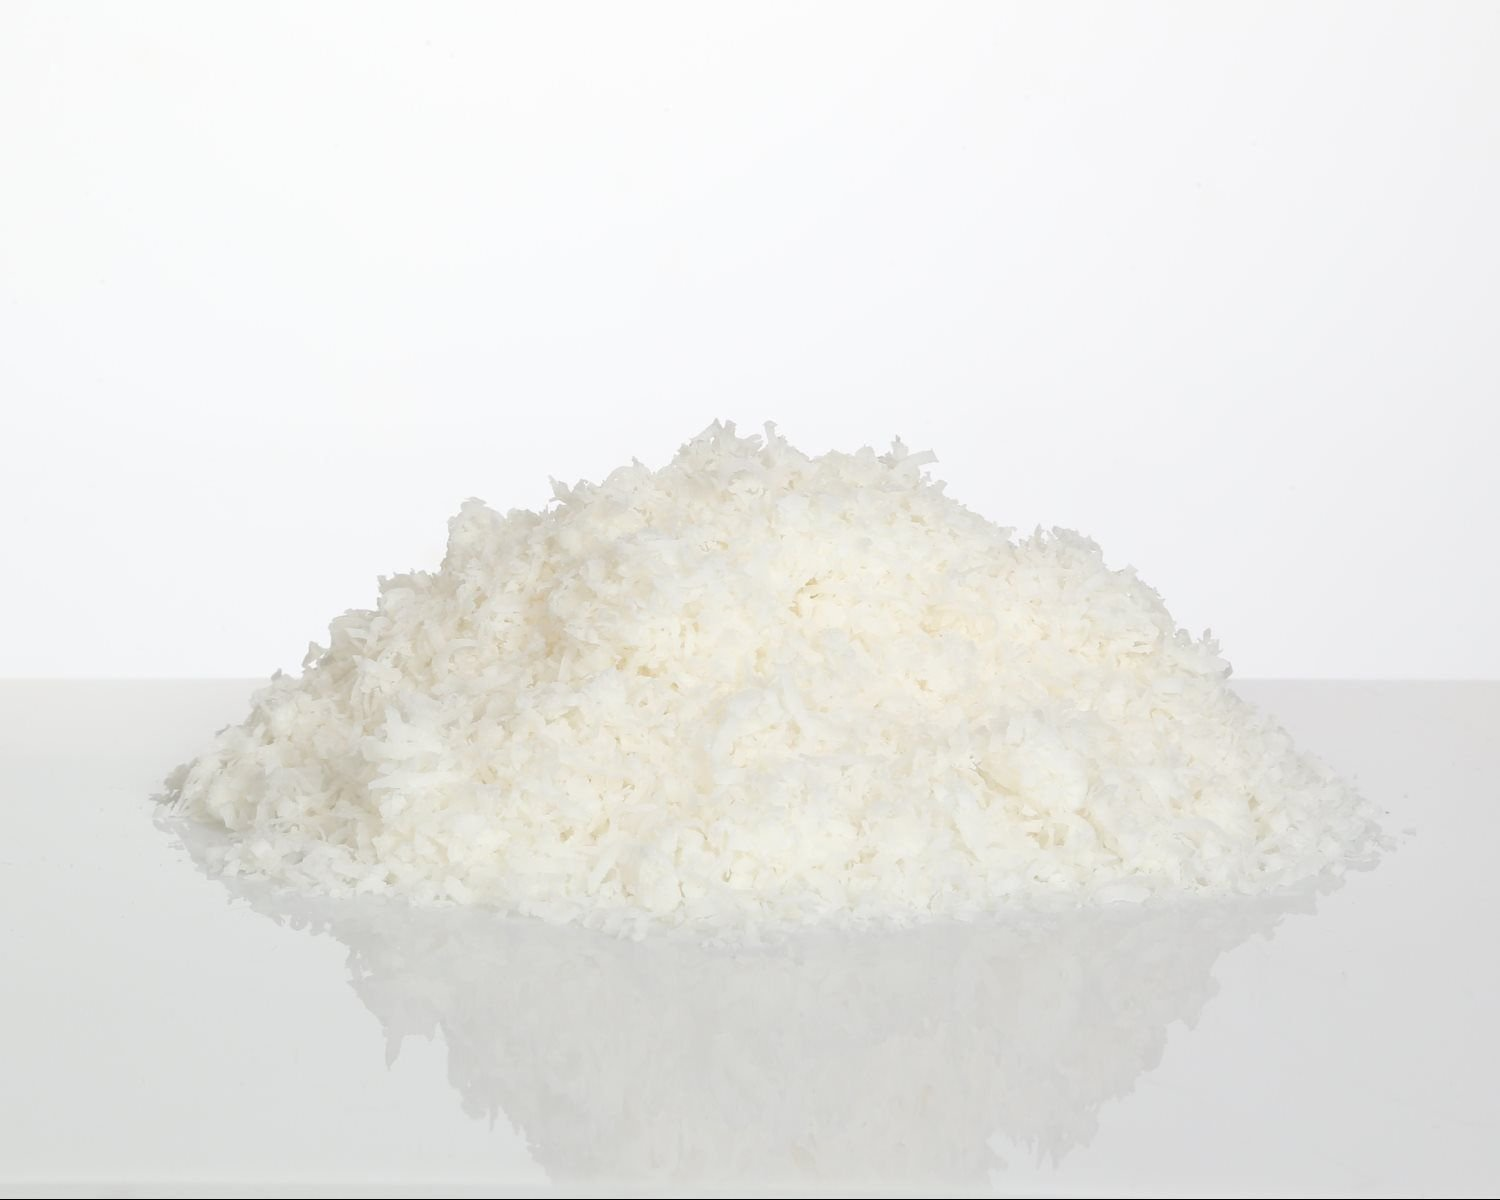 TR Toppers Snowflake Sweetened Coconut Flakes, Baking Decorating Flakes, Kosher OUV Pareve, 5 x 2 lb bags by TR Toppers (Image #1)